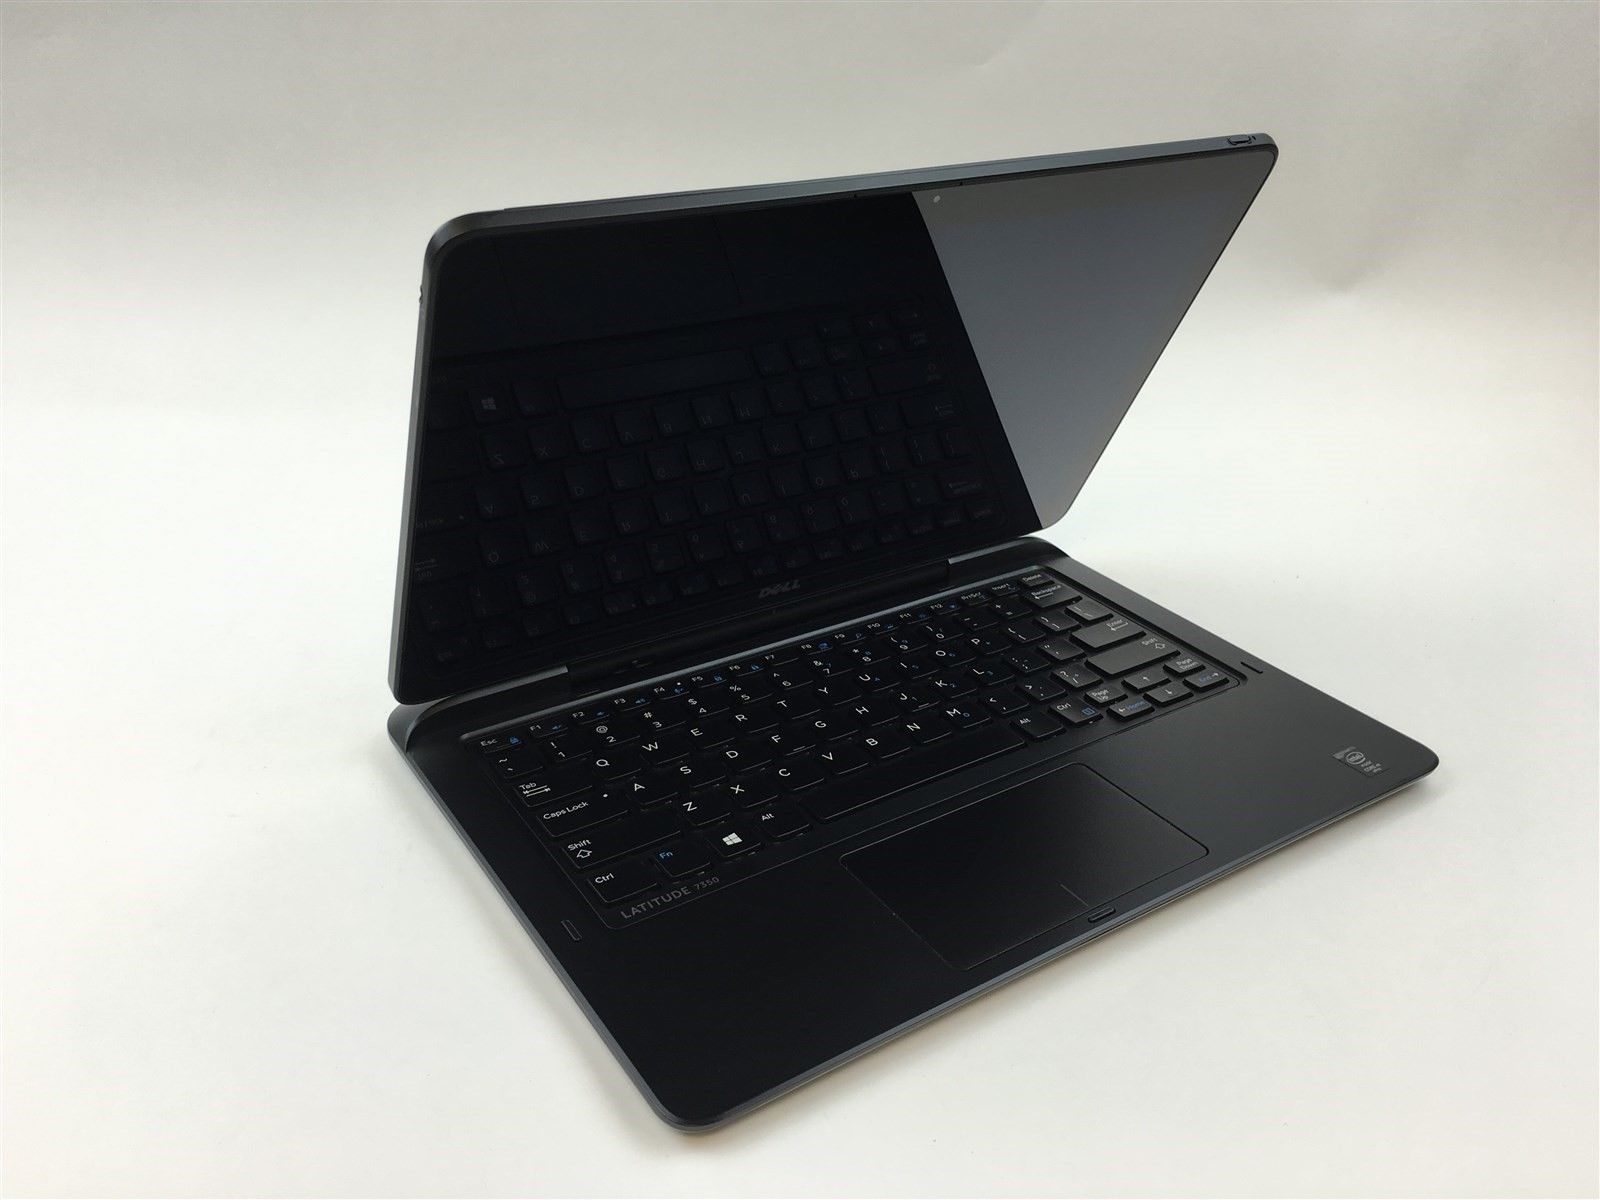 "Dell Latitude 7350 13.3"" Intel M-5Y70 8Gb RAM 128Gb SSD Win 10 Pro 2-in-1"